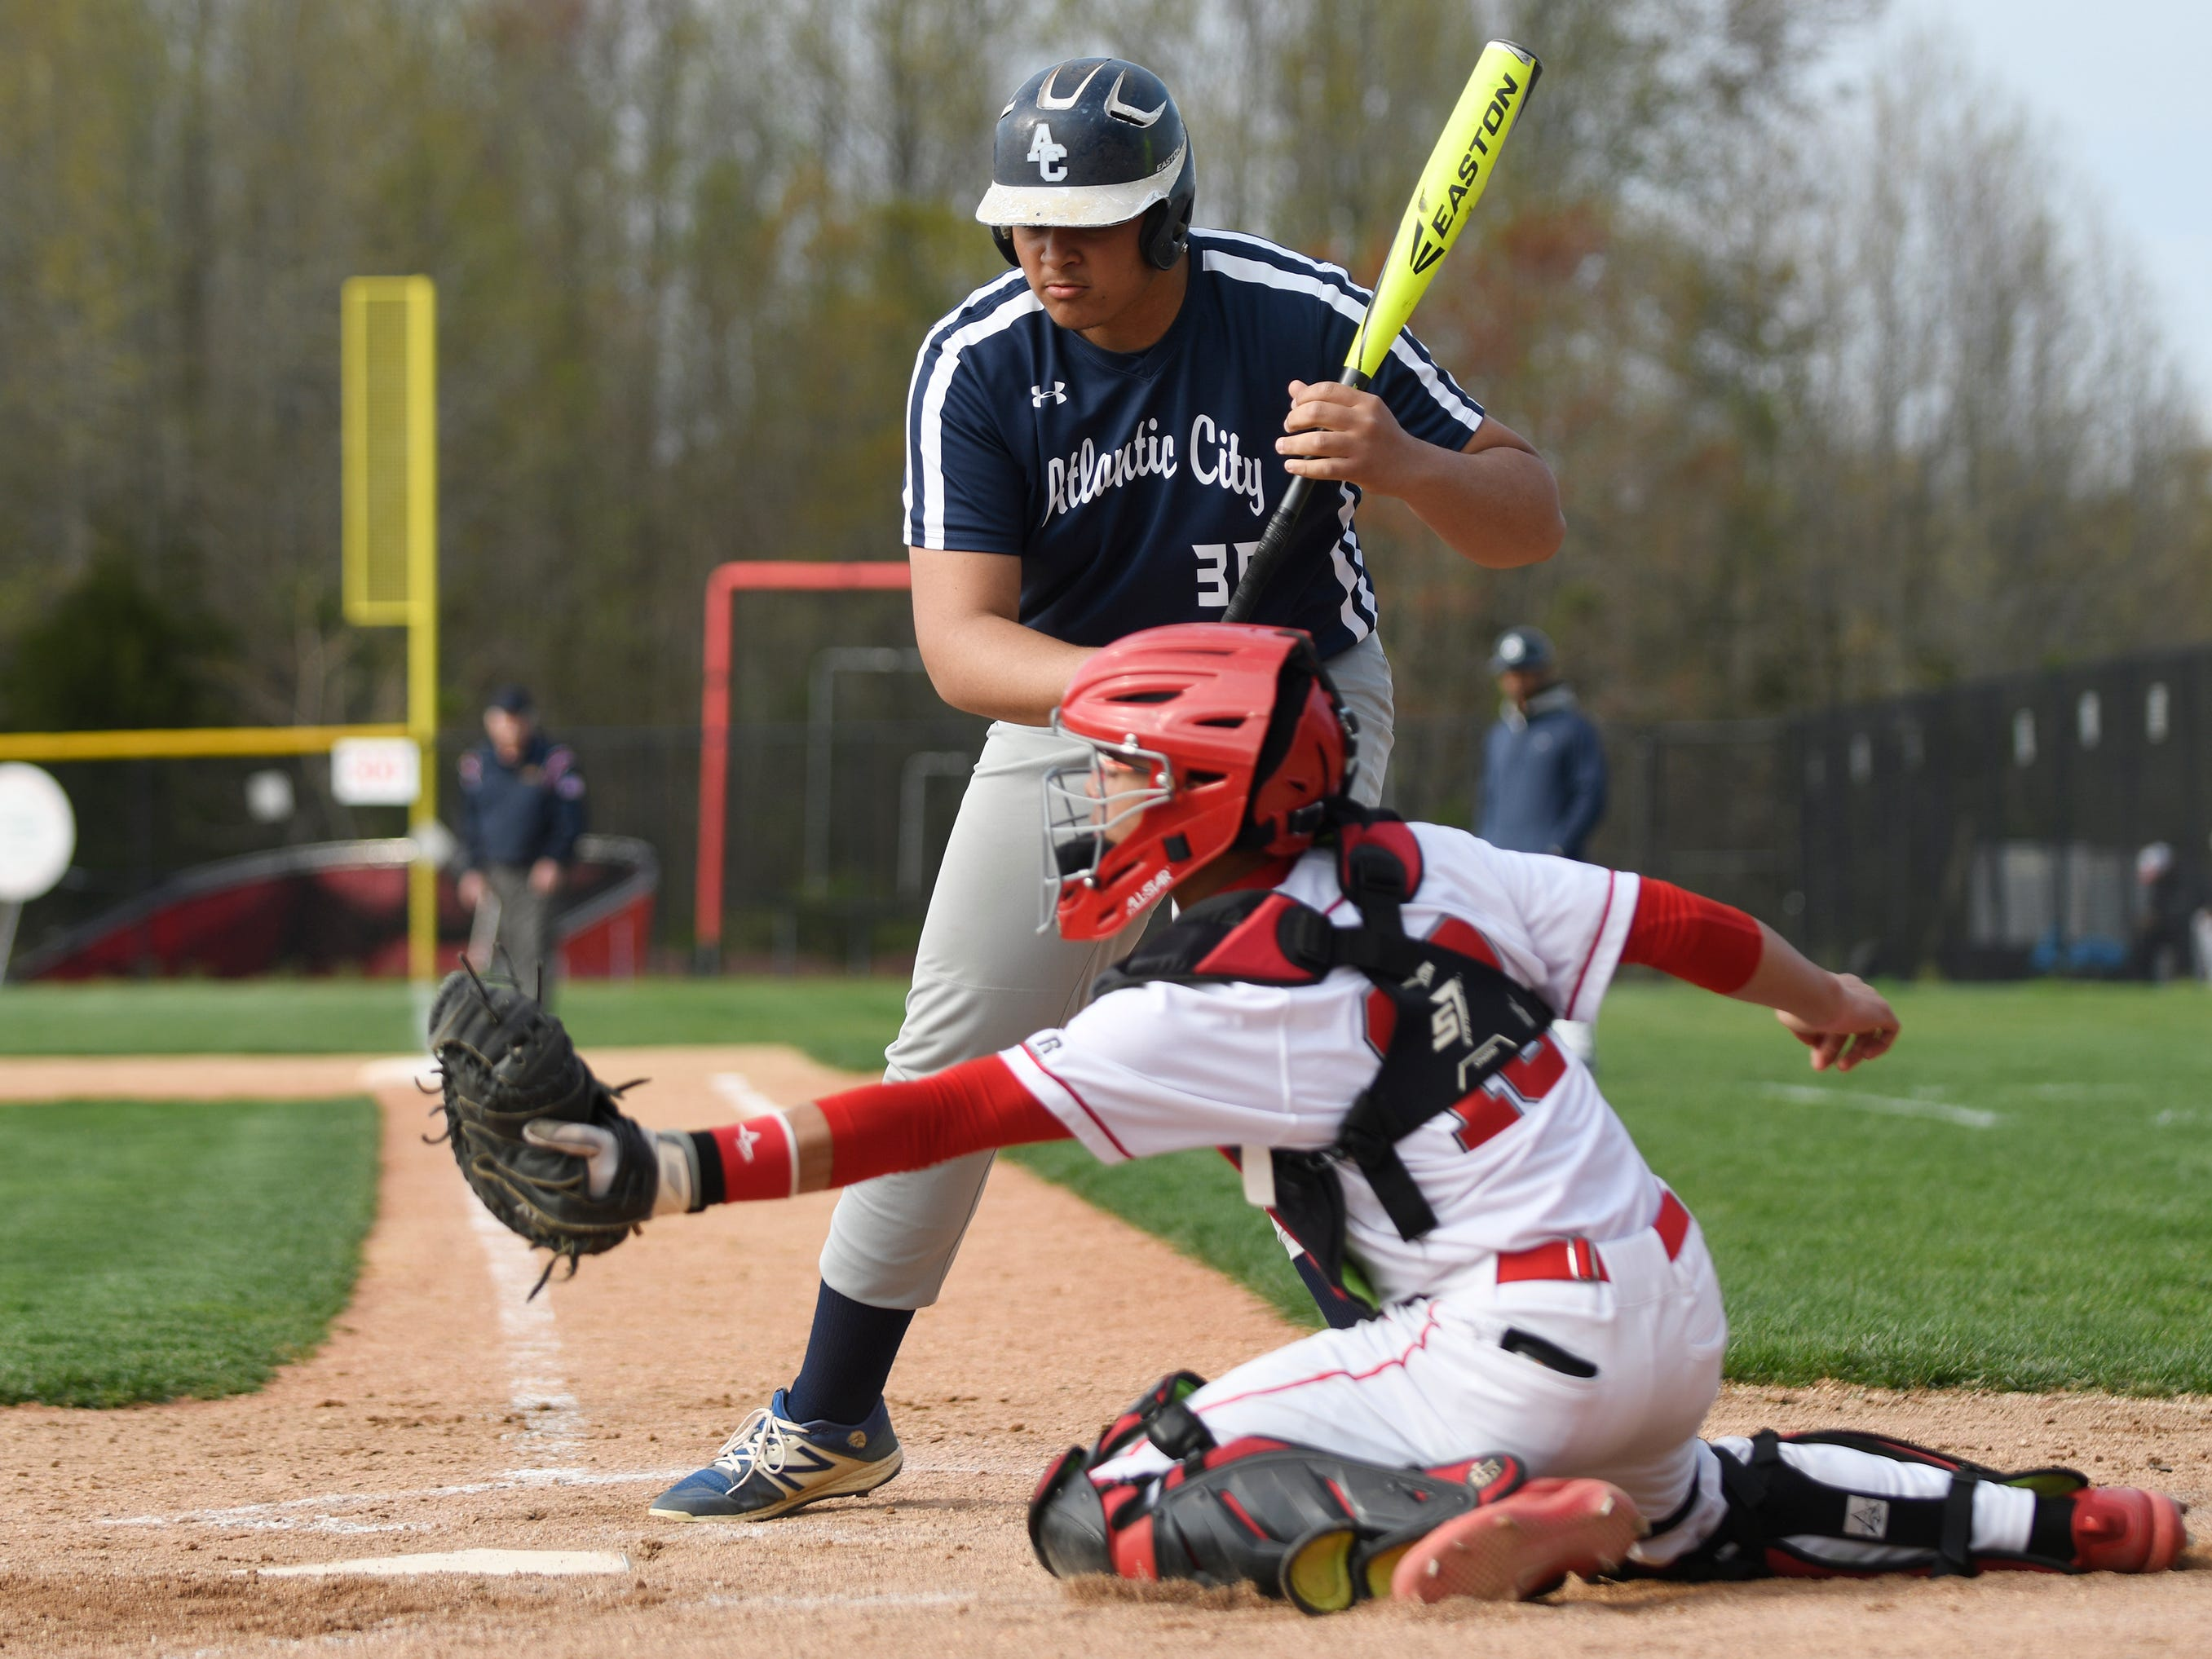 The Vineland High School baseball team hosted Atlantic City on Wednesday. The Fighting Clan topped the Vikings 12-2. 4/17/19